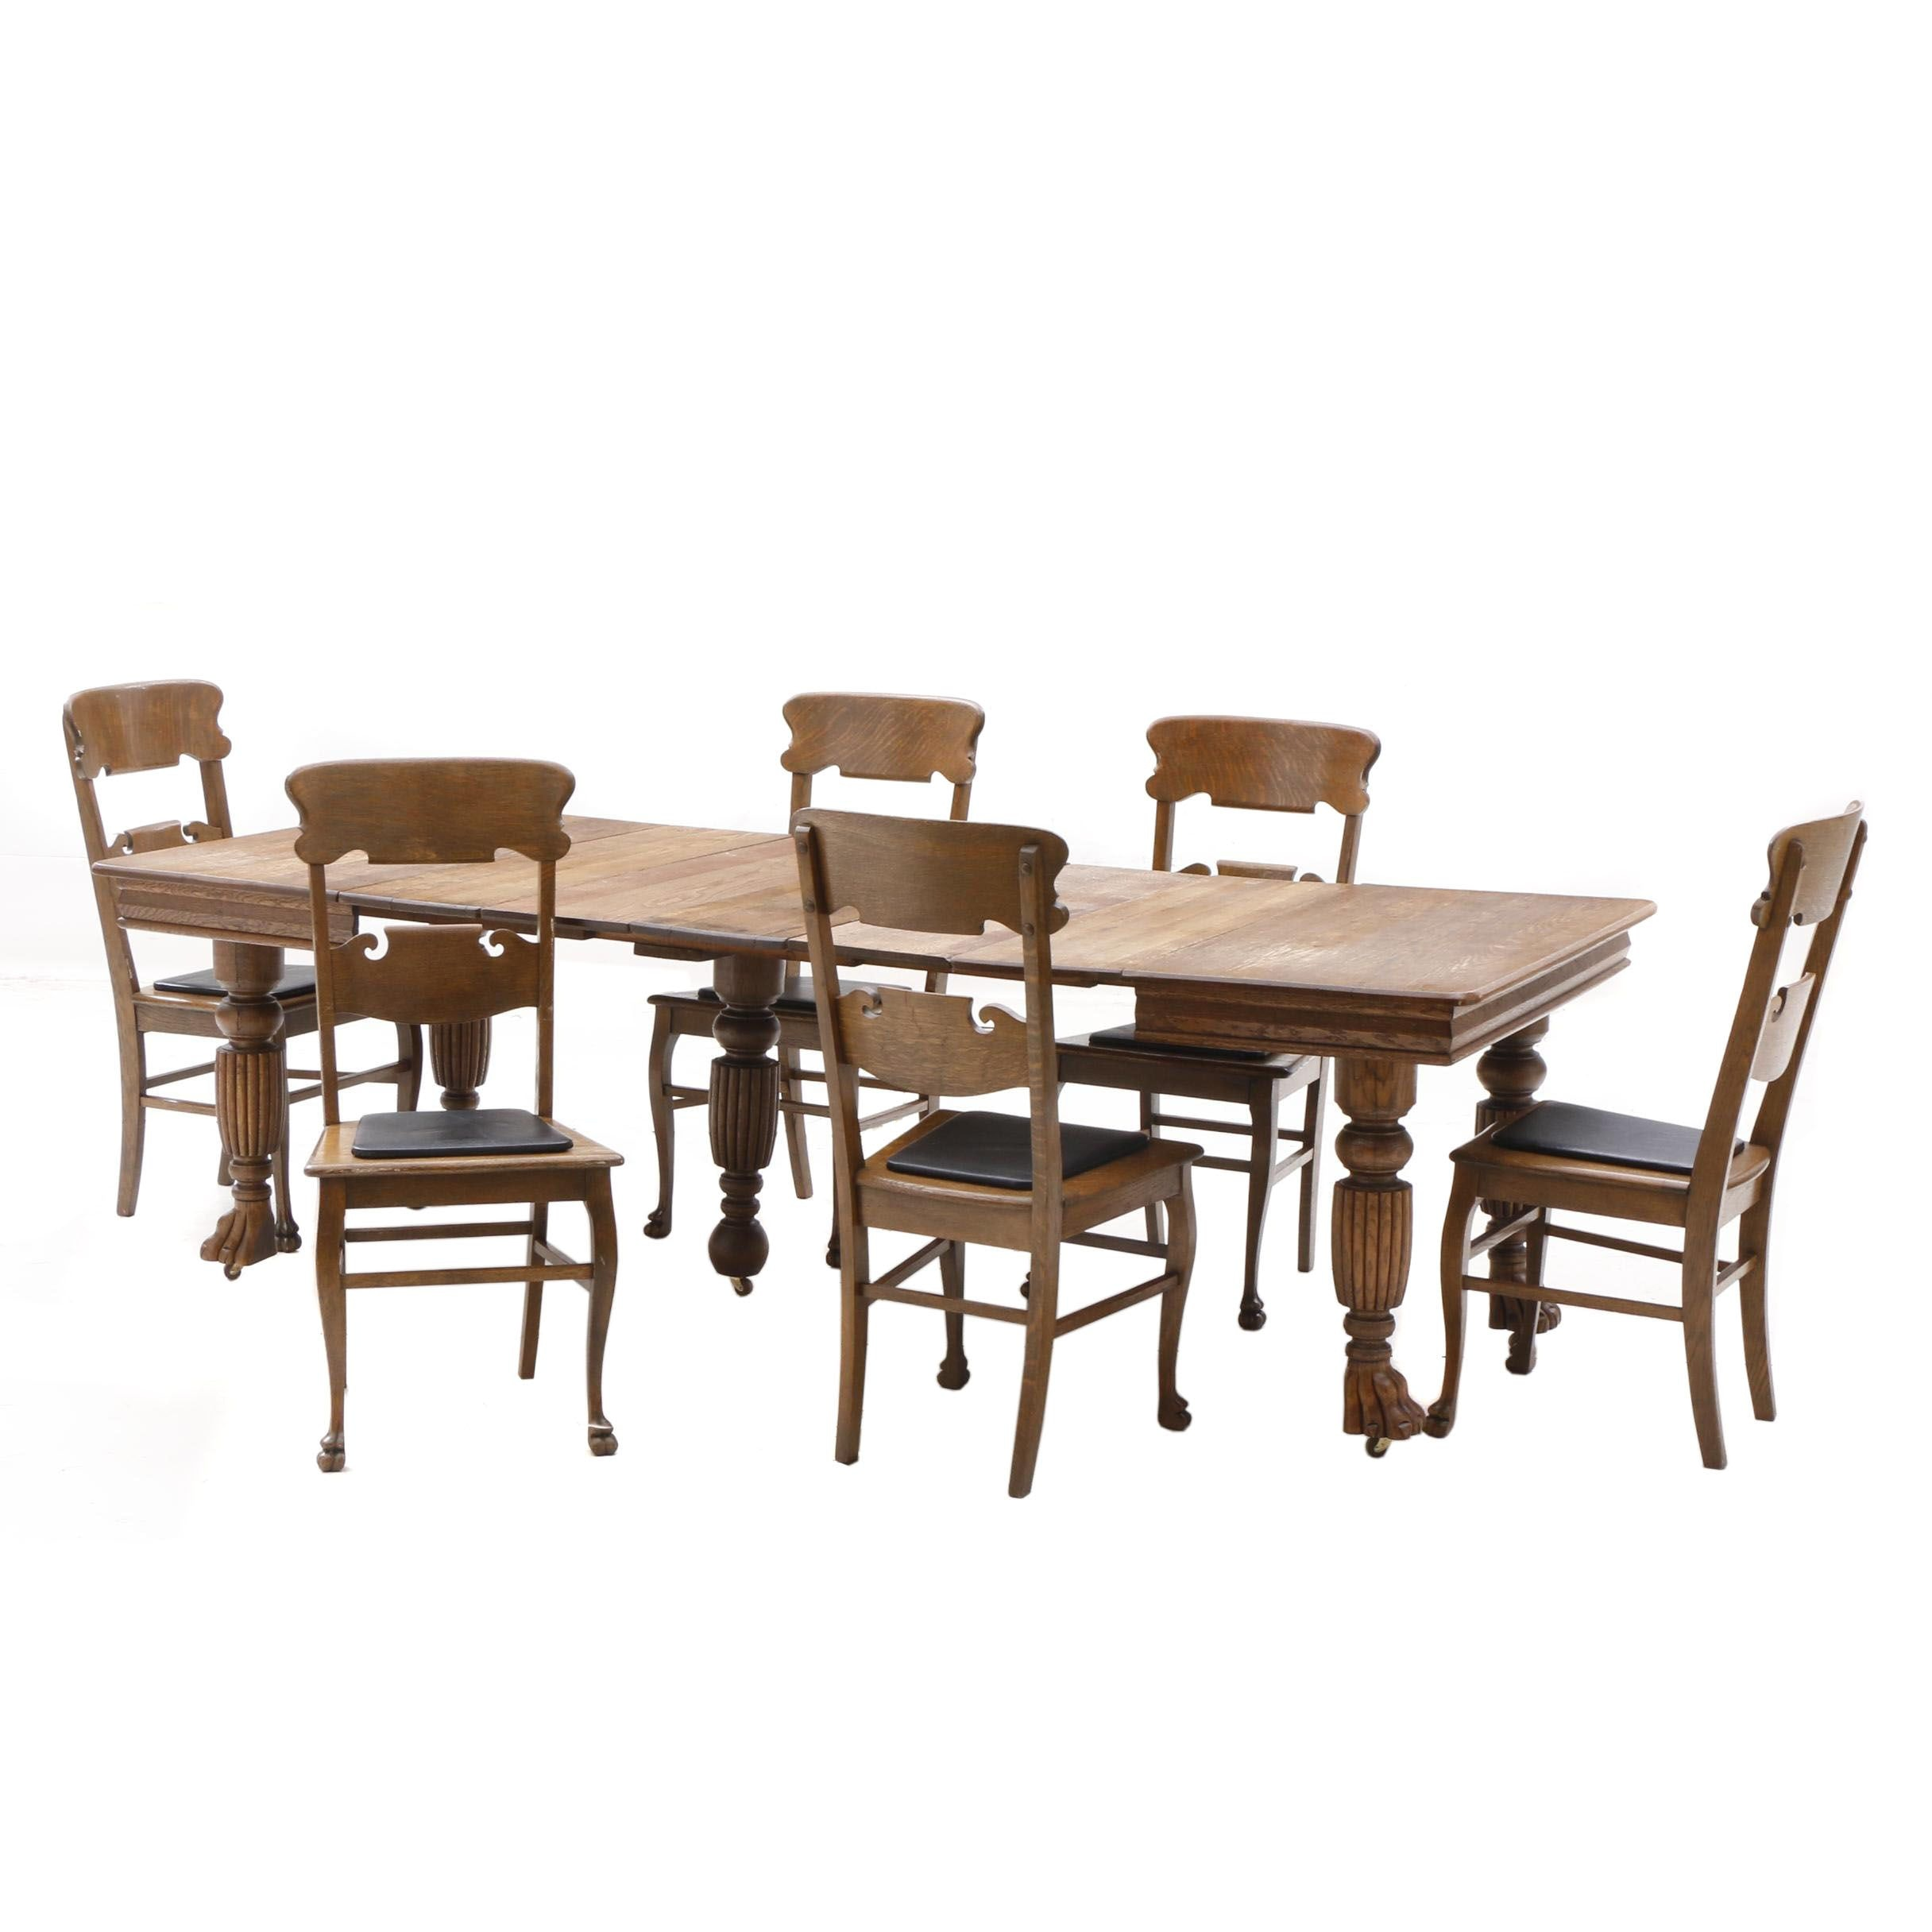 Vintage Oak Table with Matching Six Chairs